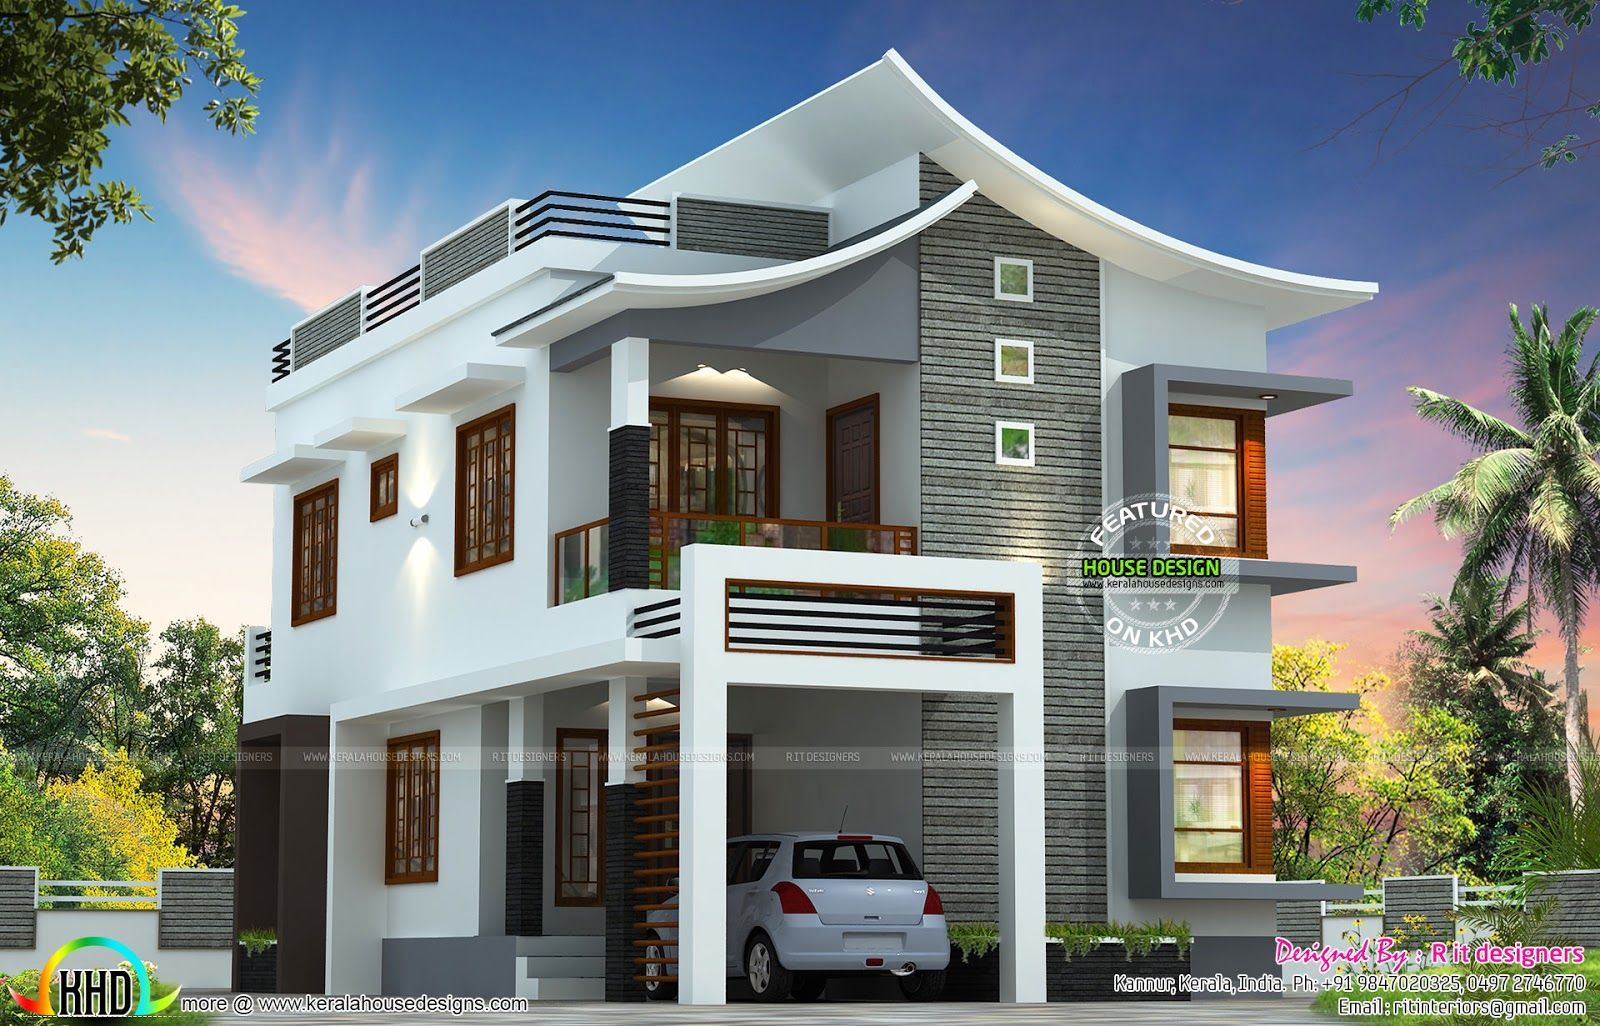 7 Smashing Hacks Dark Roofing Colors Monier Roofing Tiles Flat Roofing Fascia Patio Roofing Hot Tubs Kerala House Design House Roof Design Duplex House Design